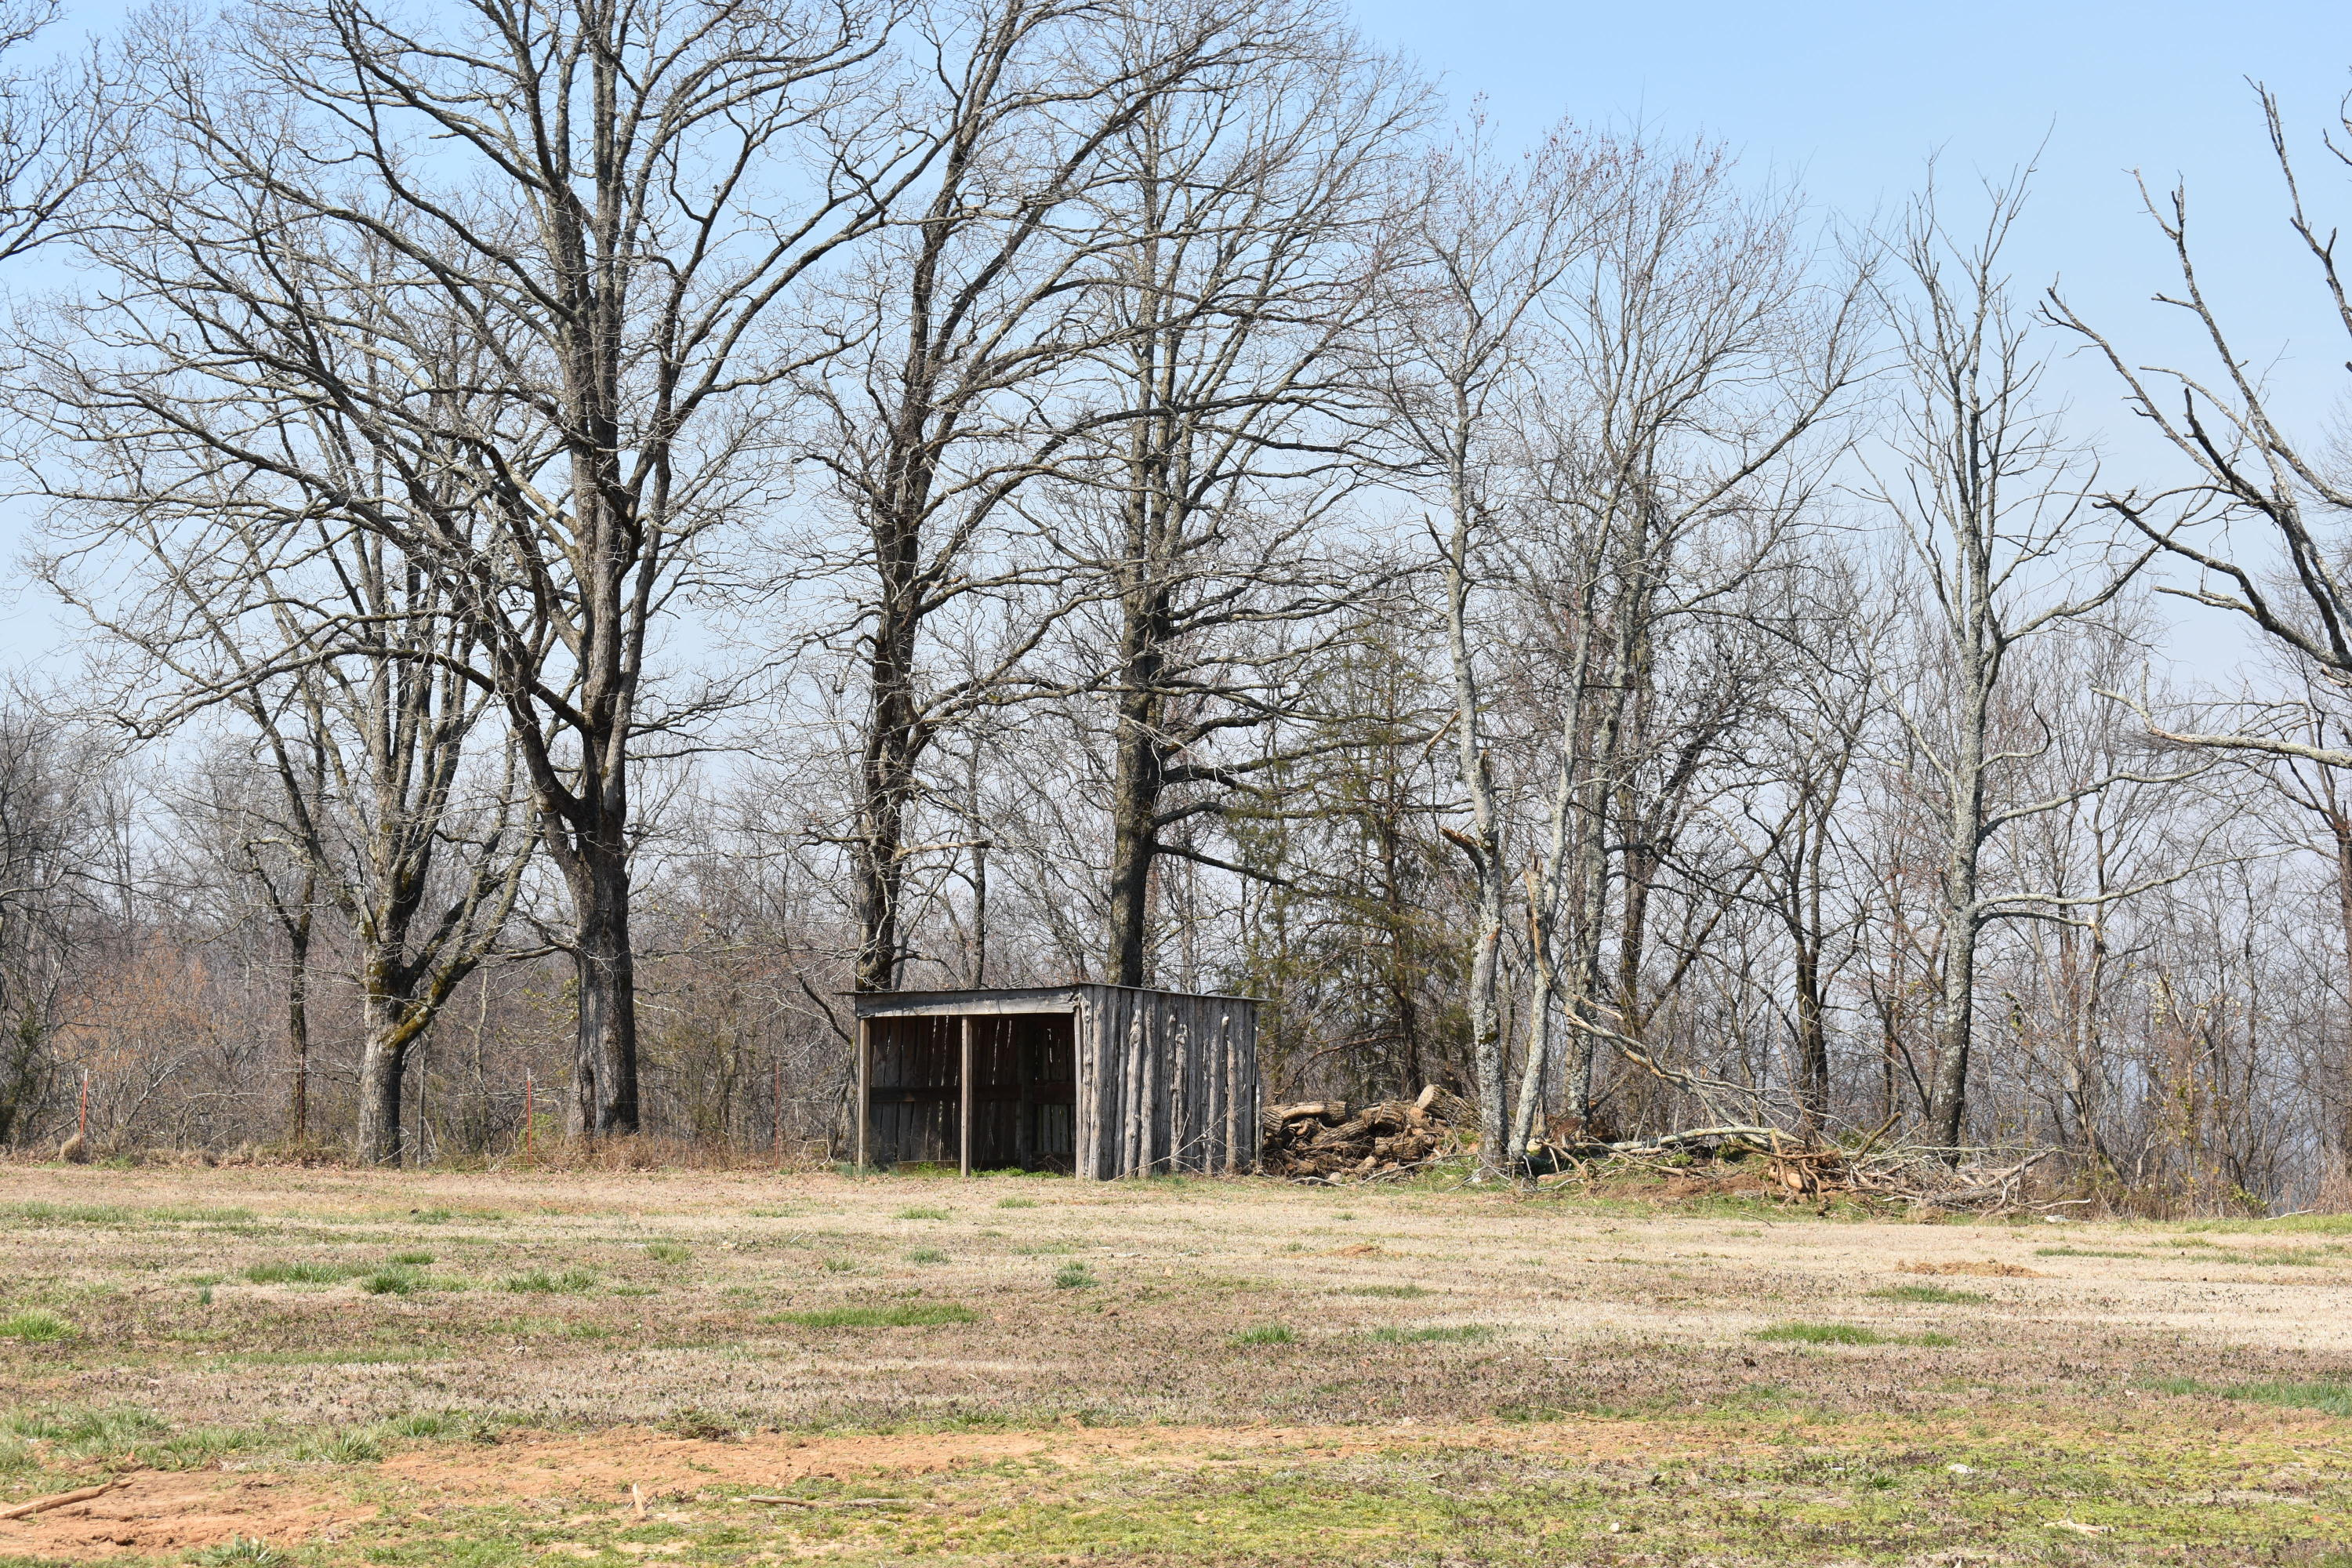 Large photo 15 of land for sale at 5867 Co Rd 4160 , Oark, AR, listed by Coldwell Banker Premier Realty